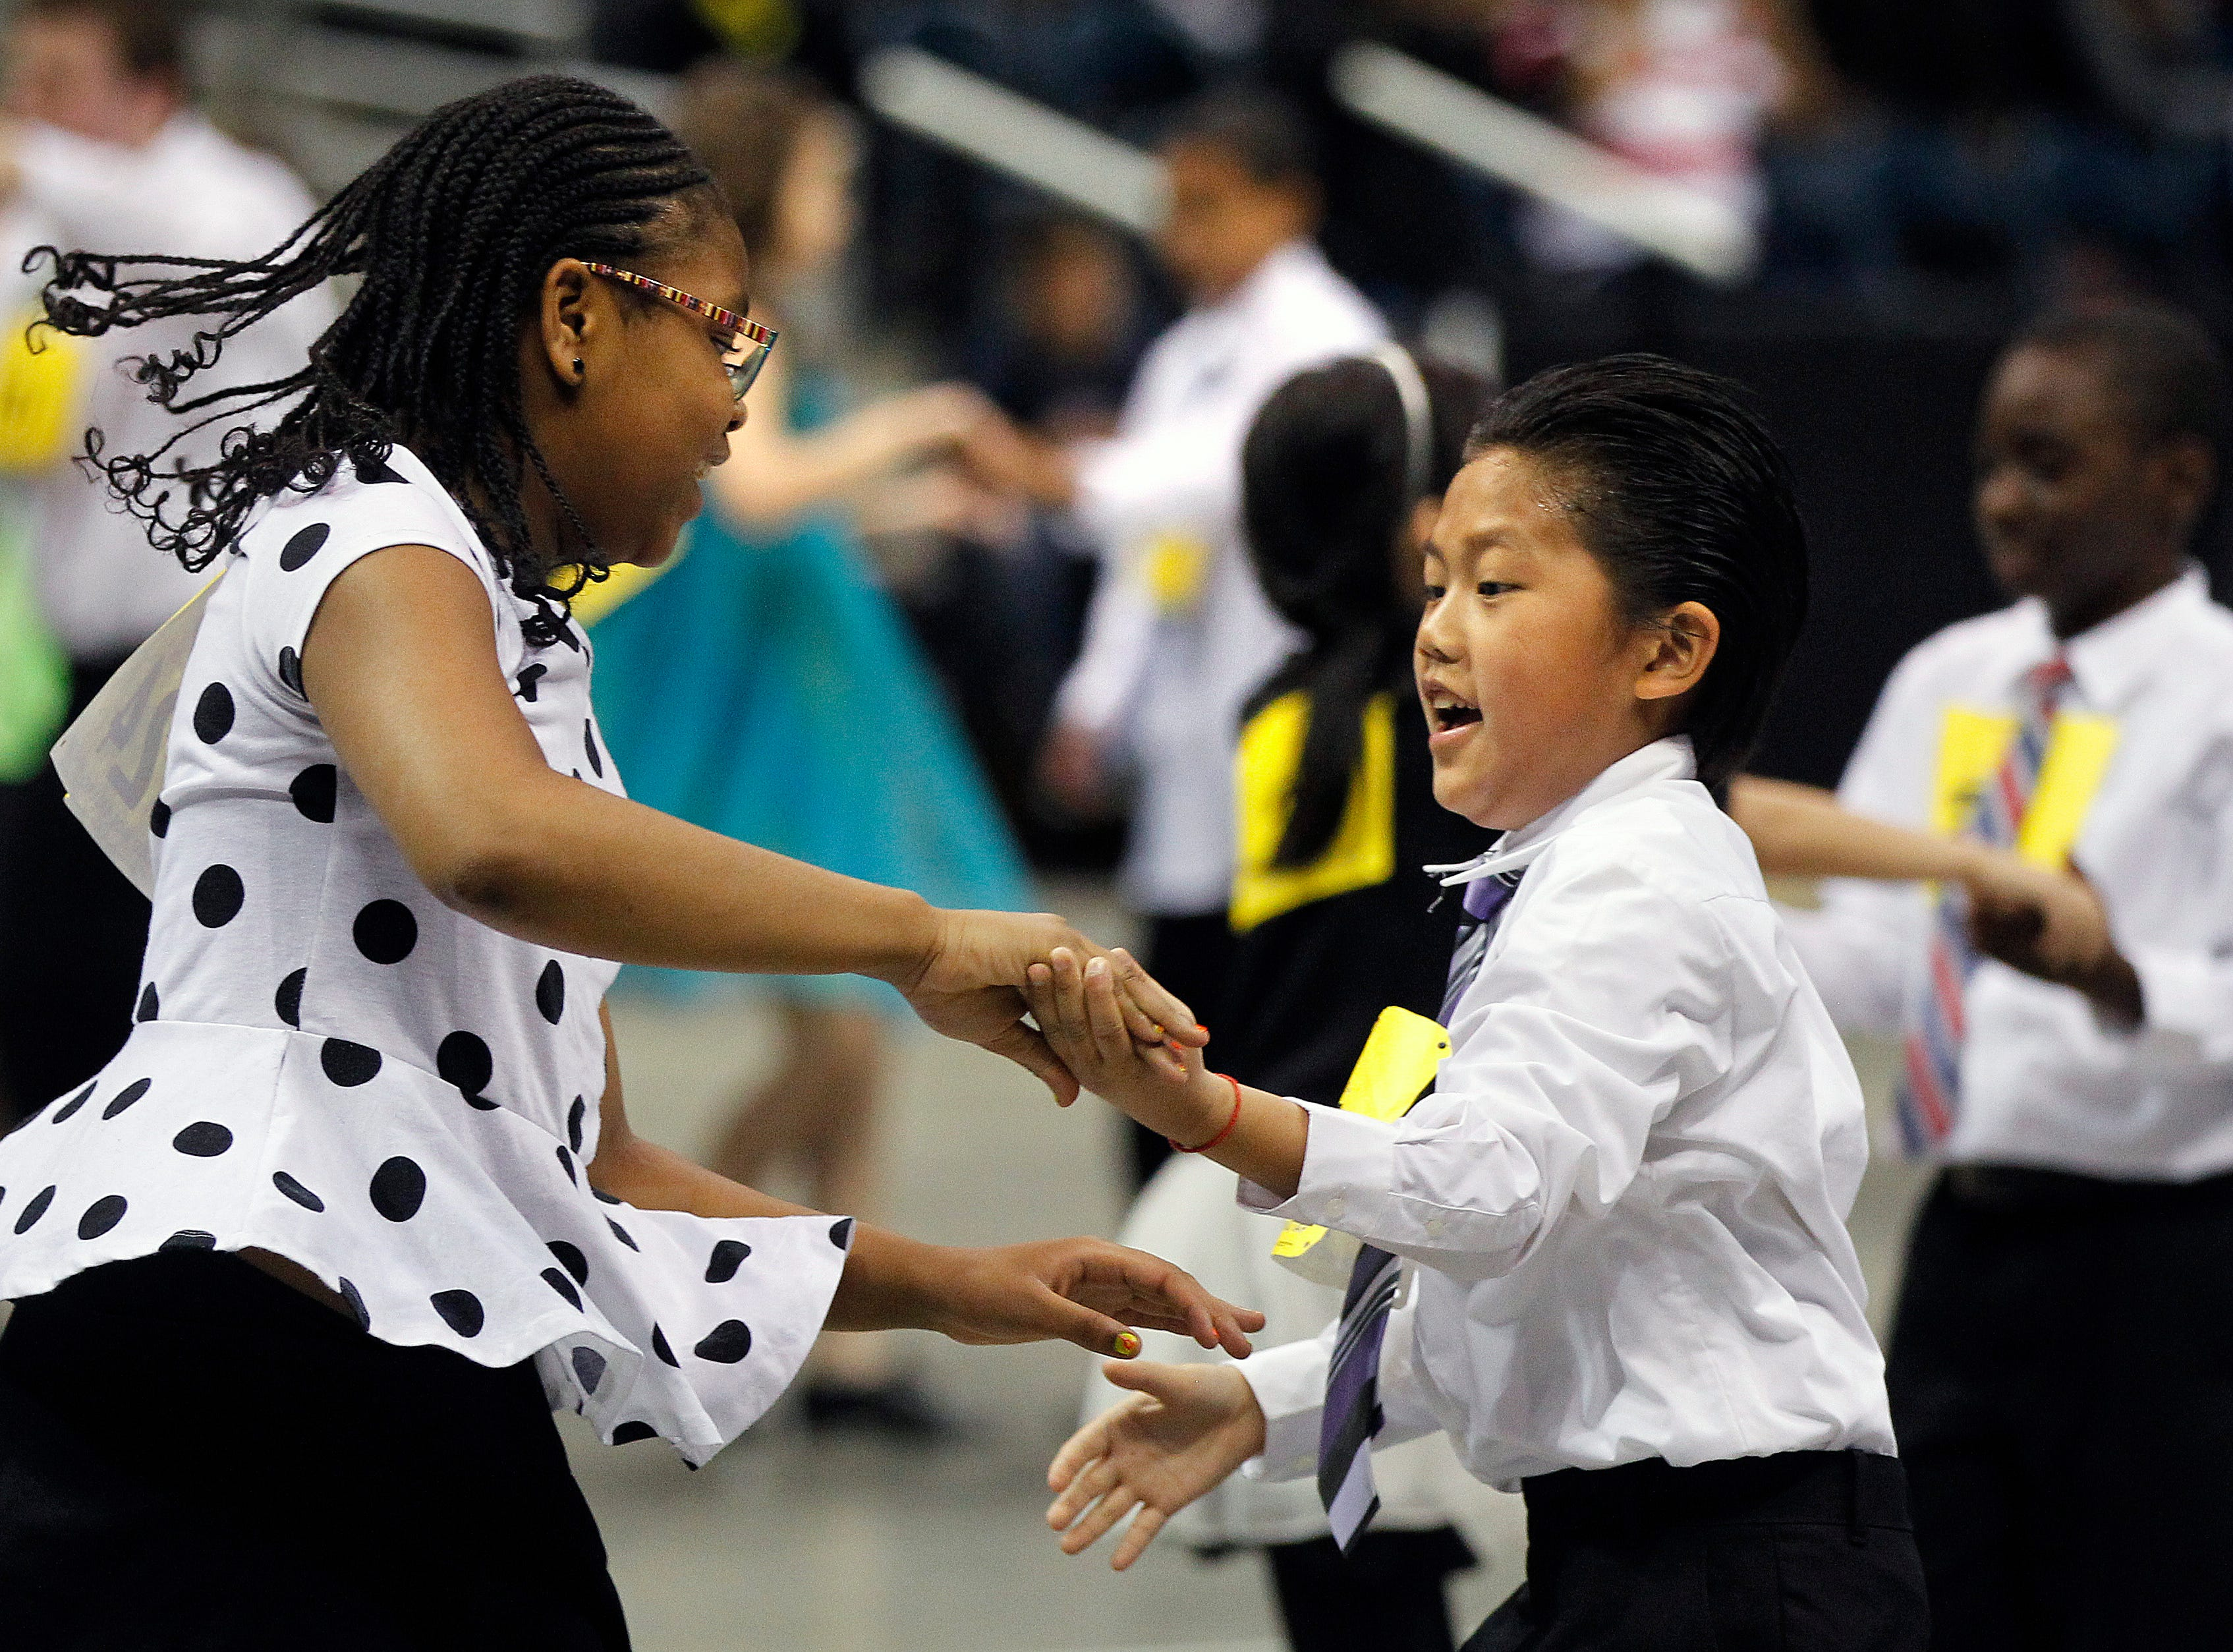 2014: Students from Kluge Elementary School dance during the annual Mad Hot Ballroom and Tap competition at the BMO Harris Bradley Center.